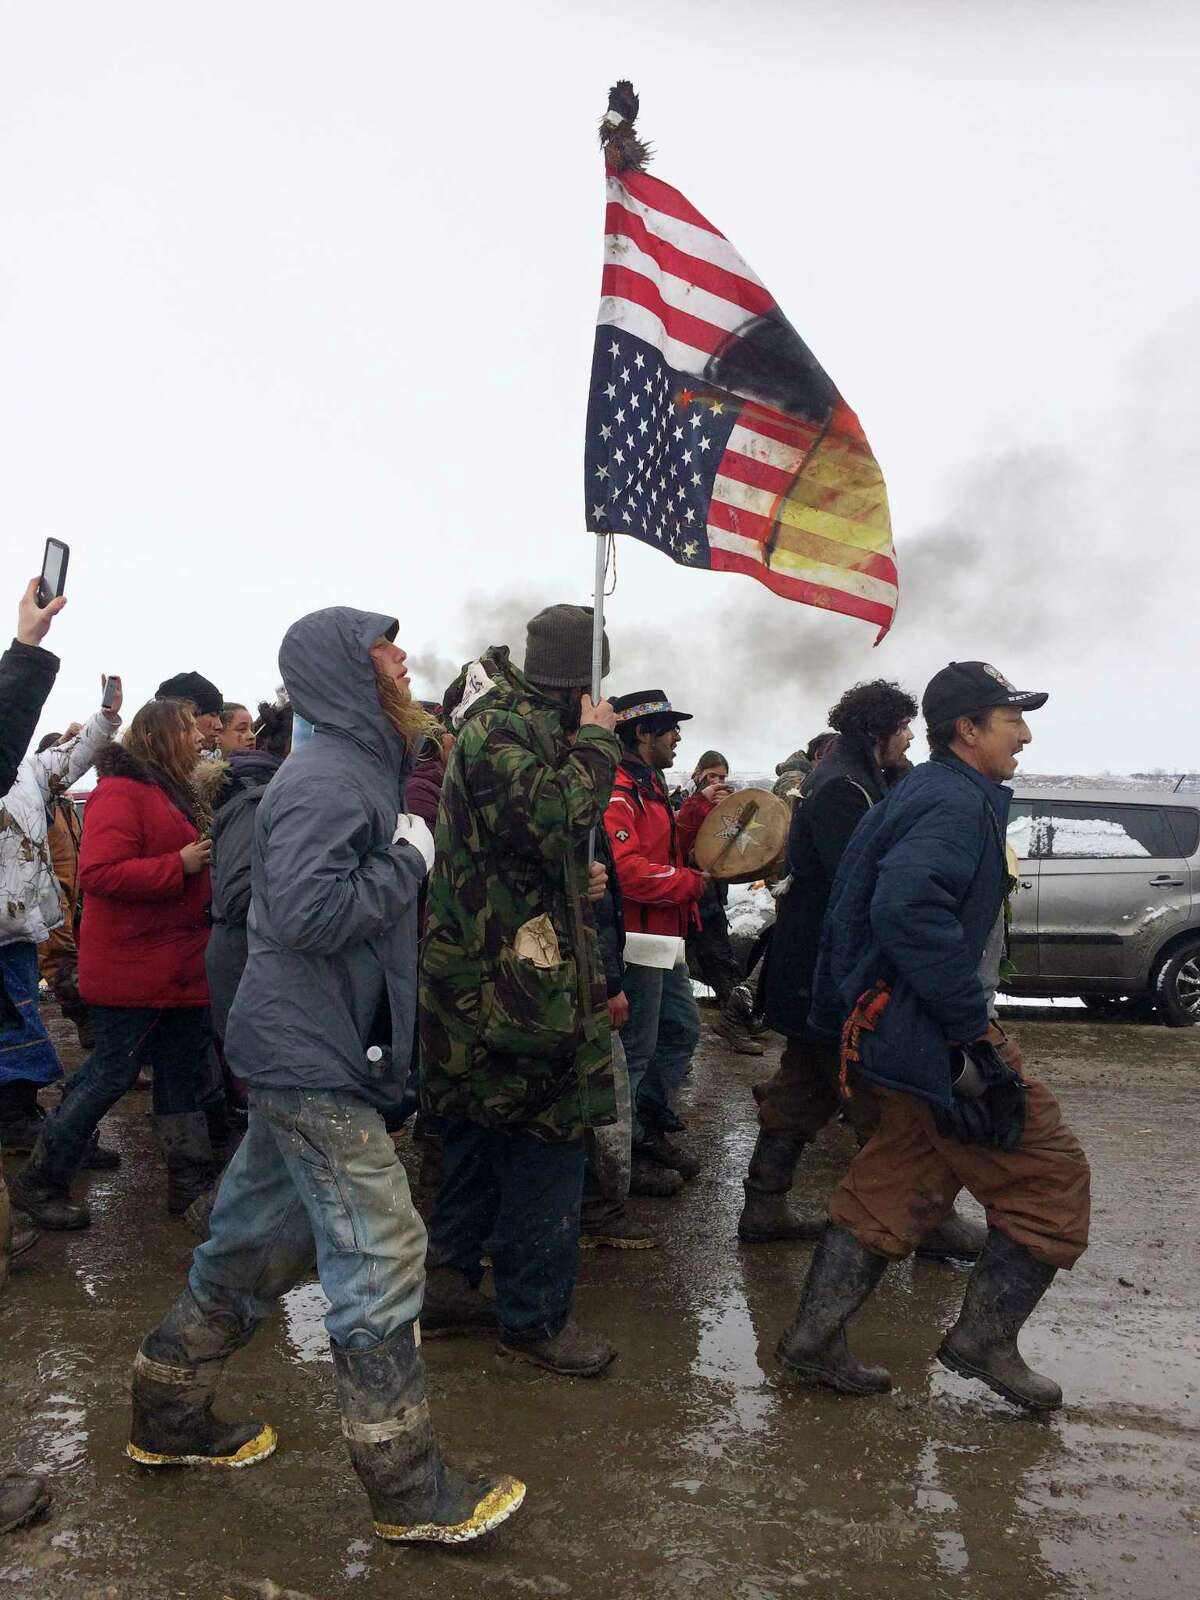 People peacefully leave the Dakota Access pipeline main protest camp near Cannon Ball, N.D., as authorities prepare to shut it down in advance of the spring flooding season. The Army Corps of Engineers ordered the camp closed at 2 p.m. Wednesday. (AP Photo/Blake Nicholson) ORG XMIT: RPBN107